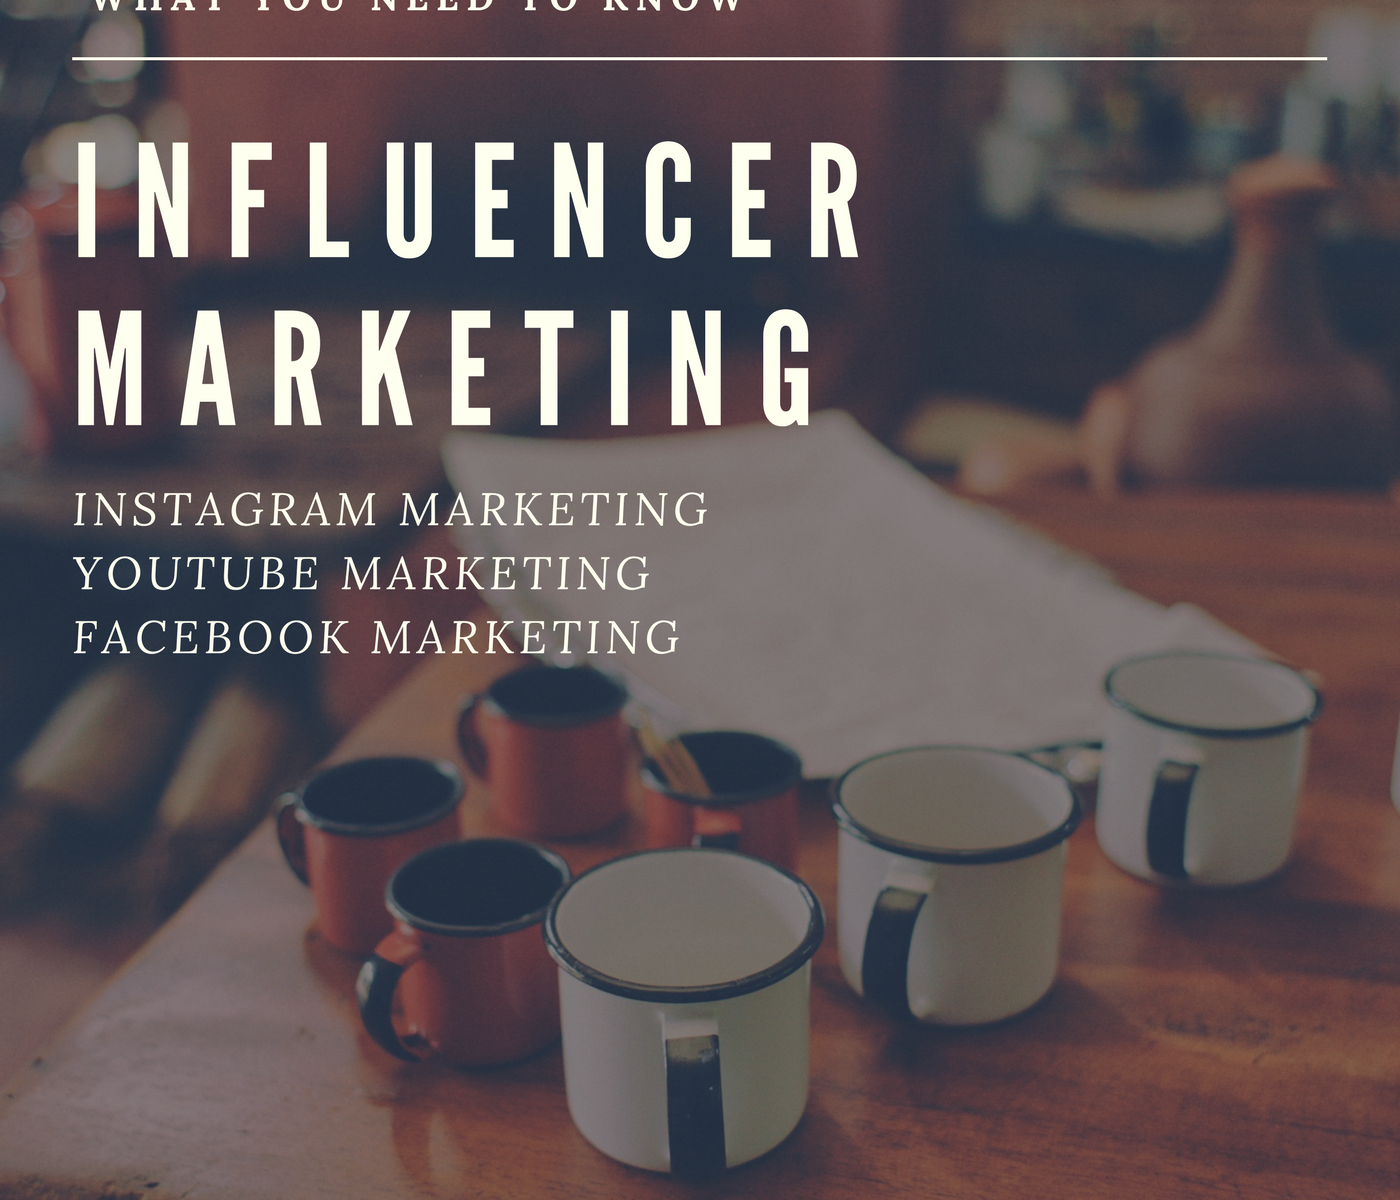 Instagram Marketing YouTube Marketing Facebook Marketing – What You Need to Know – Influencer Marketing